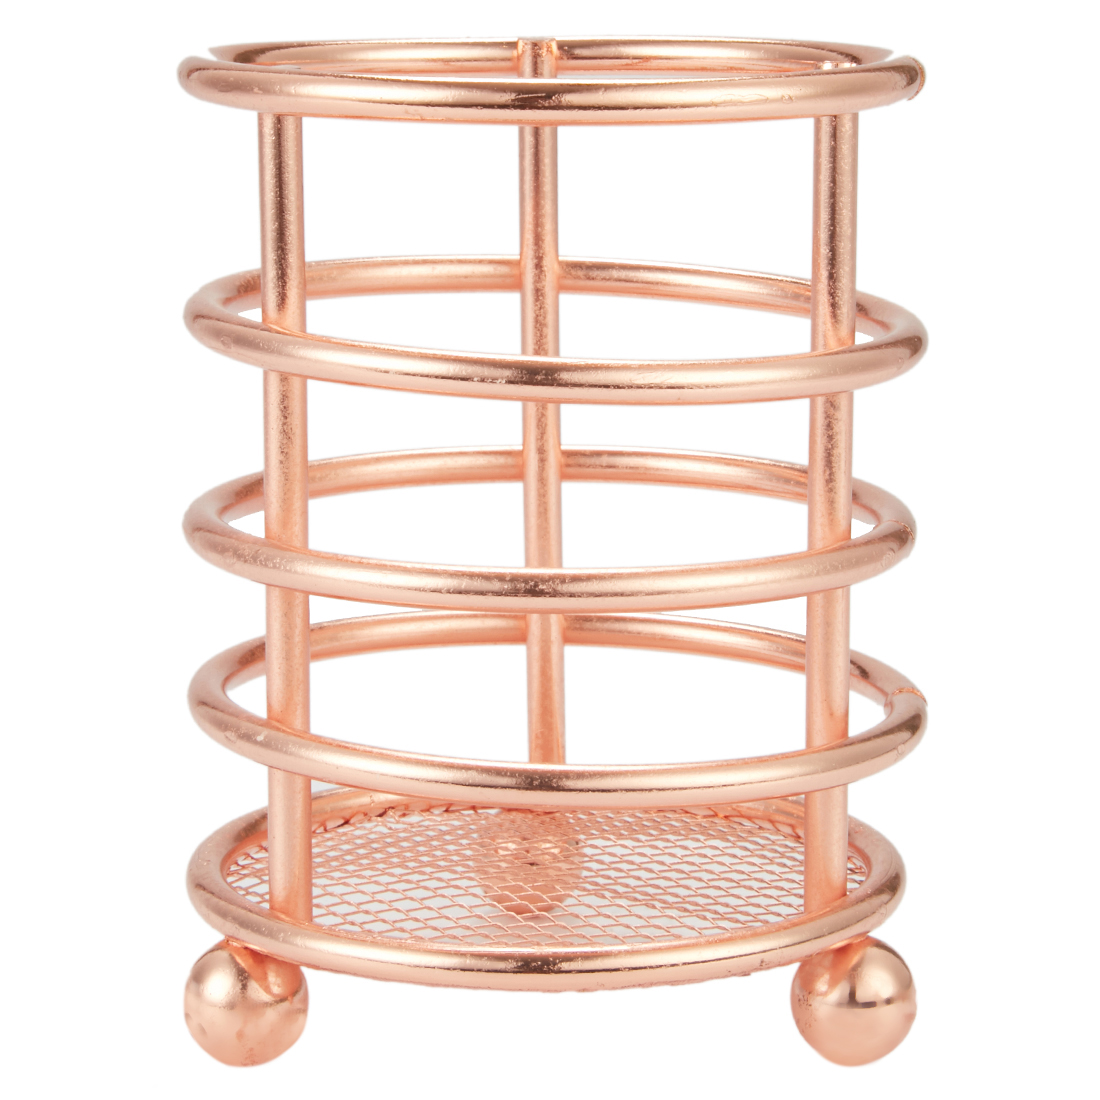 Cutlery Holder Holders in Copper Finish Colour by Living Essence